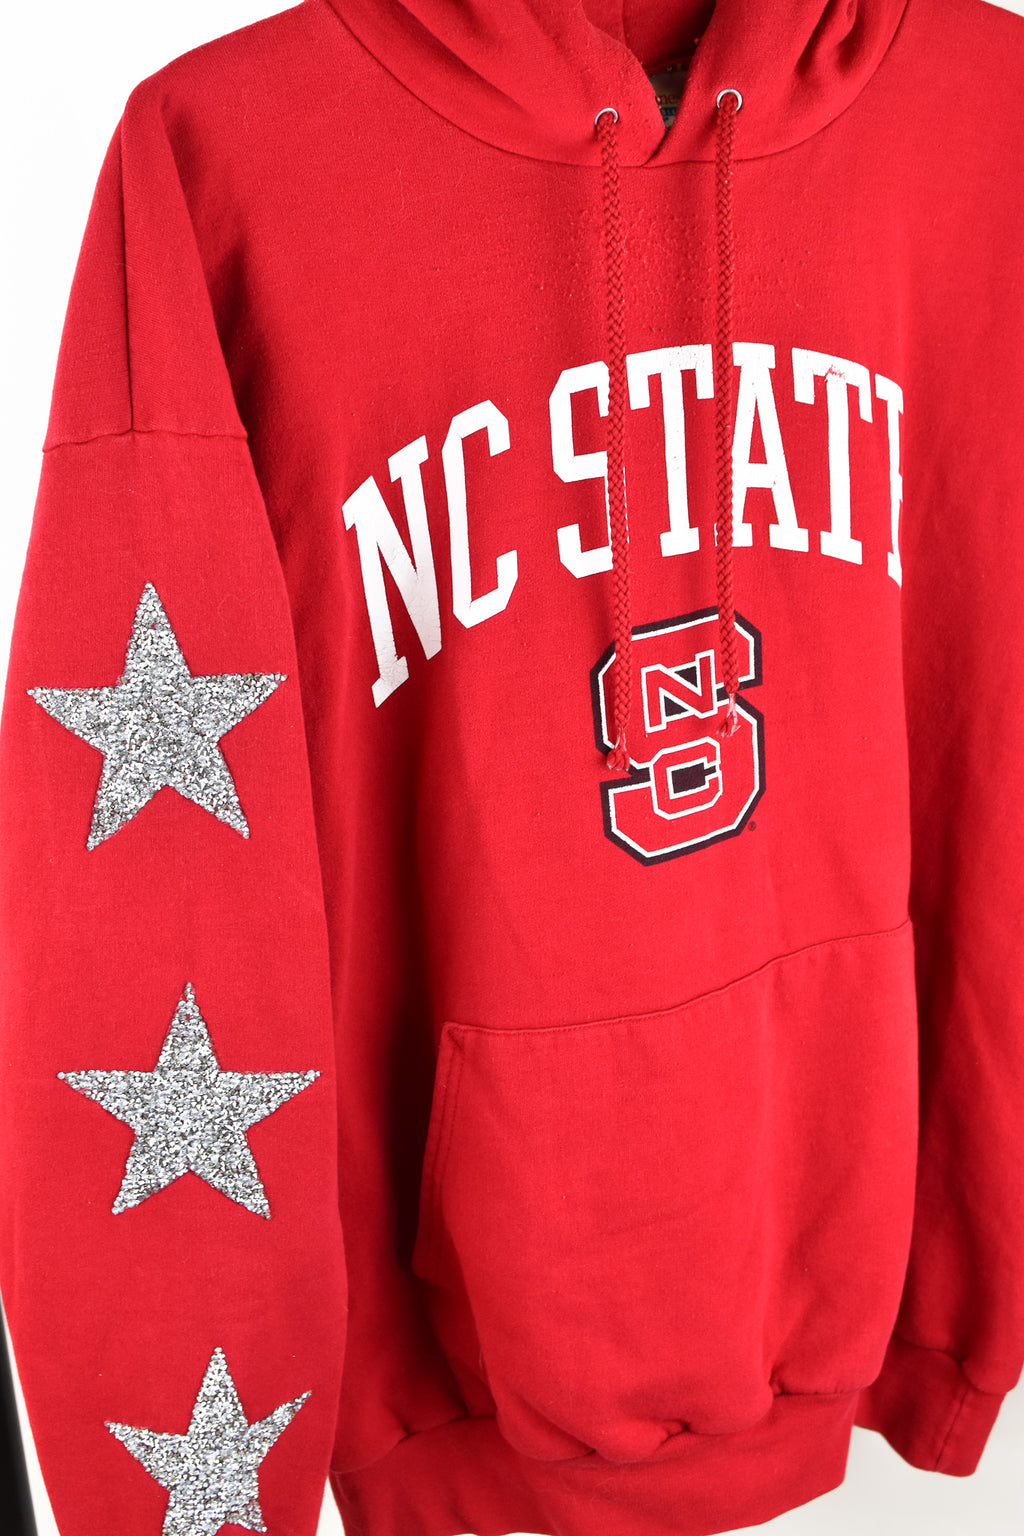 Upcycled North Carolina State University Star Rhinestone Sweatshirt